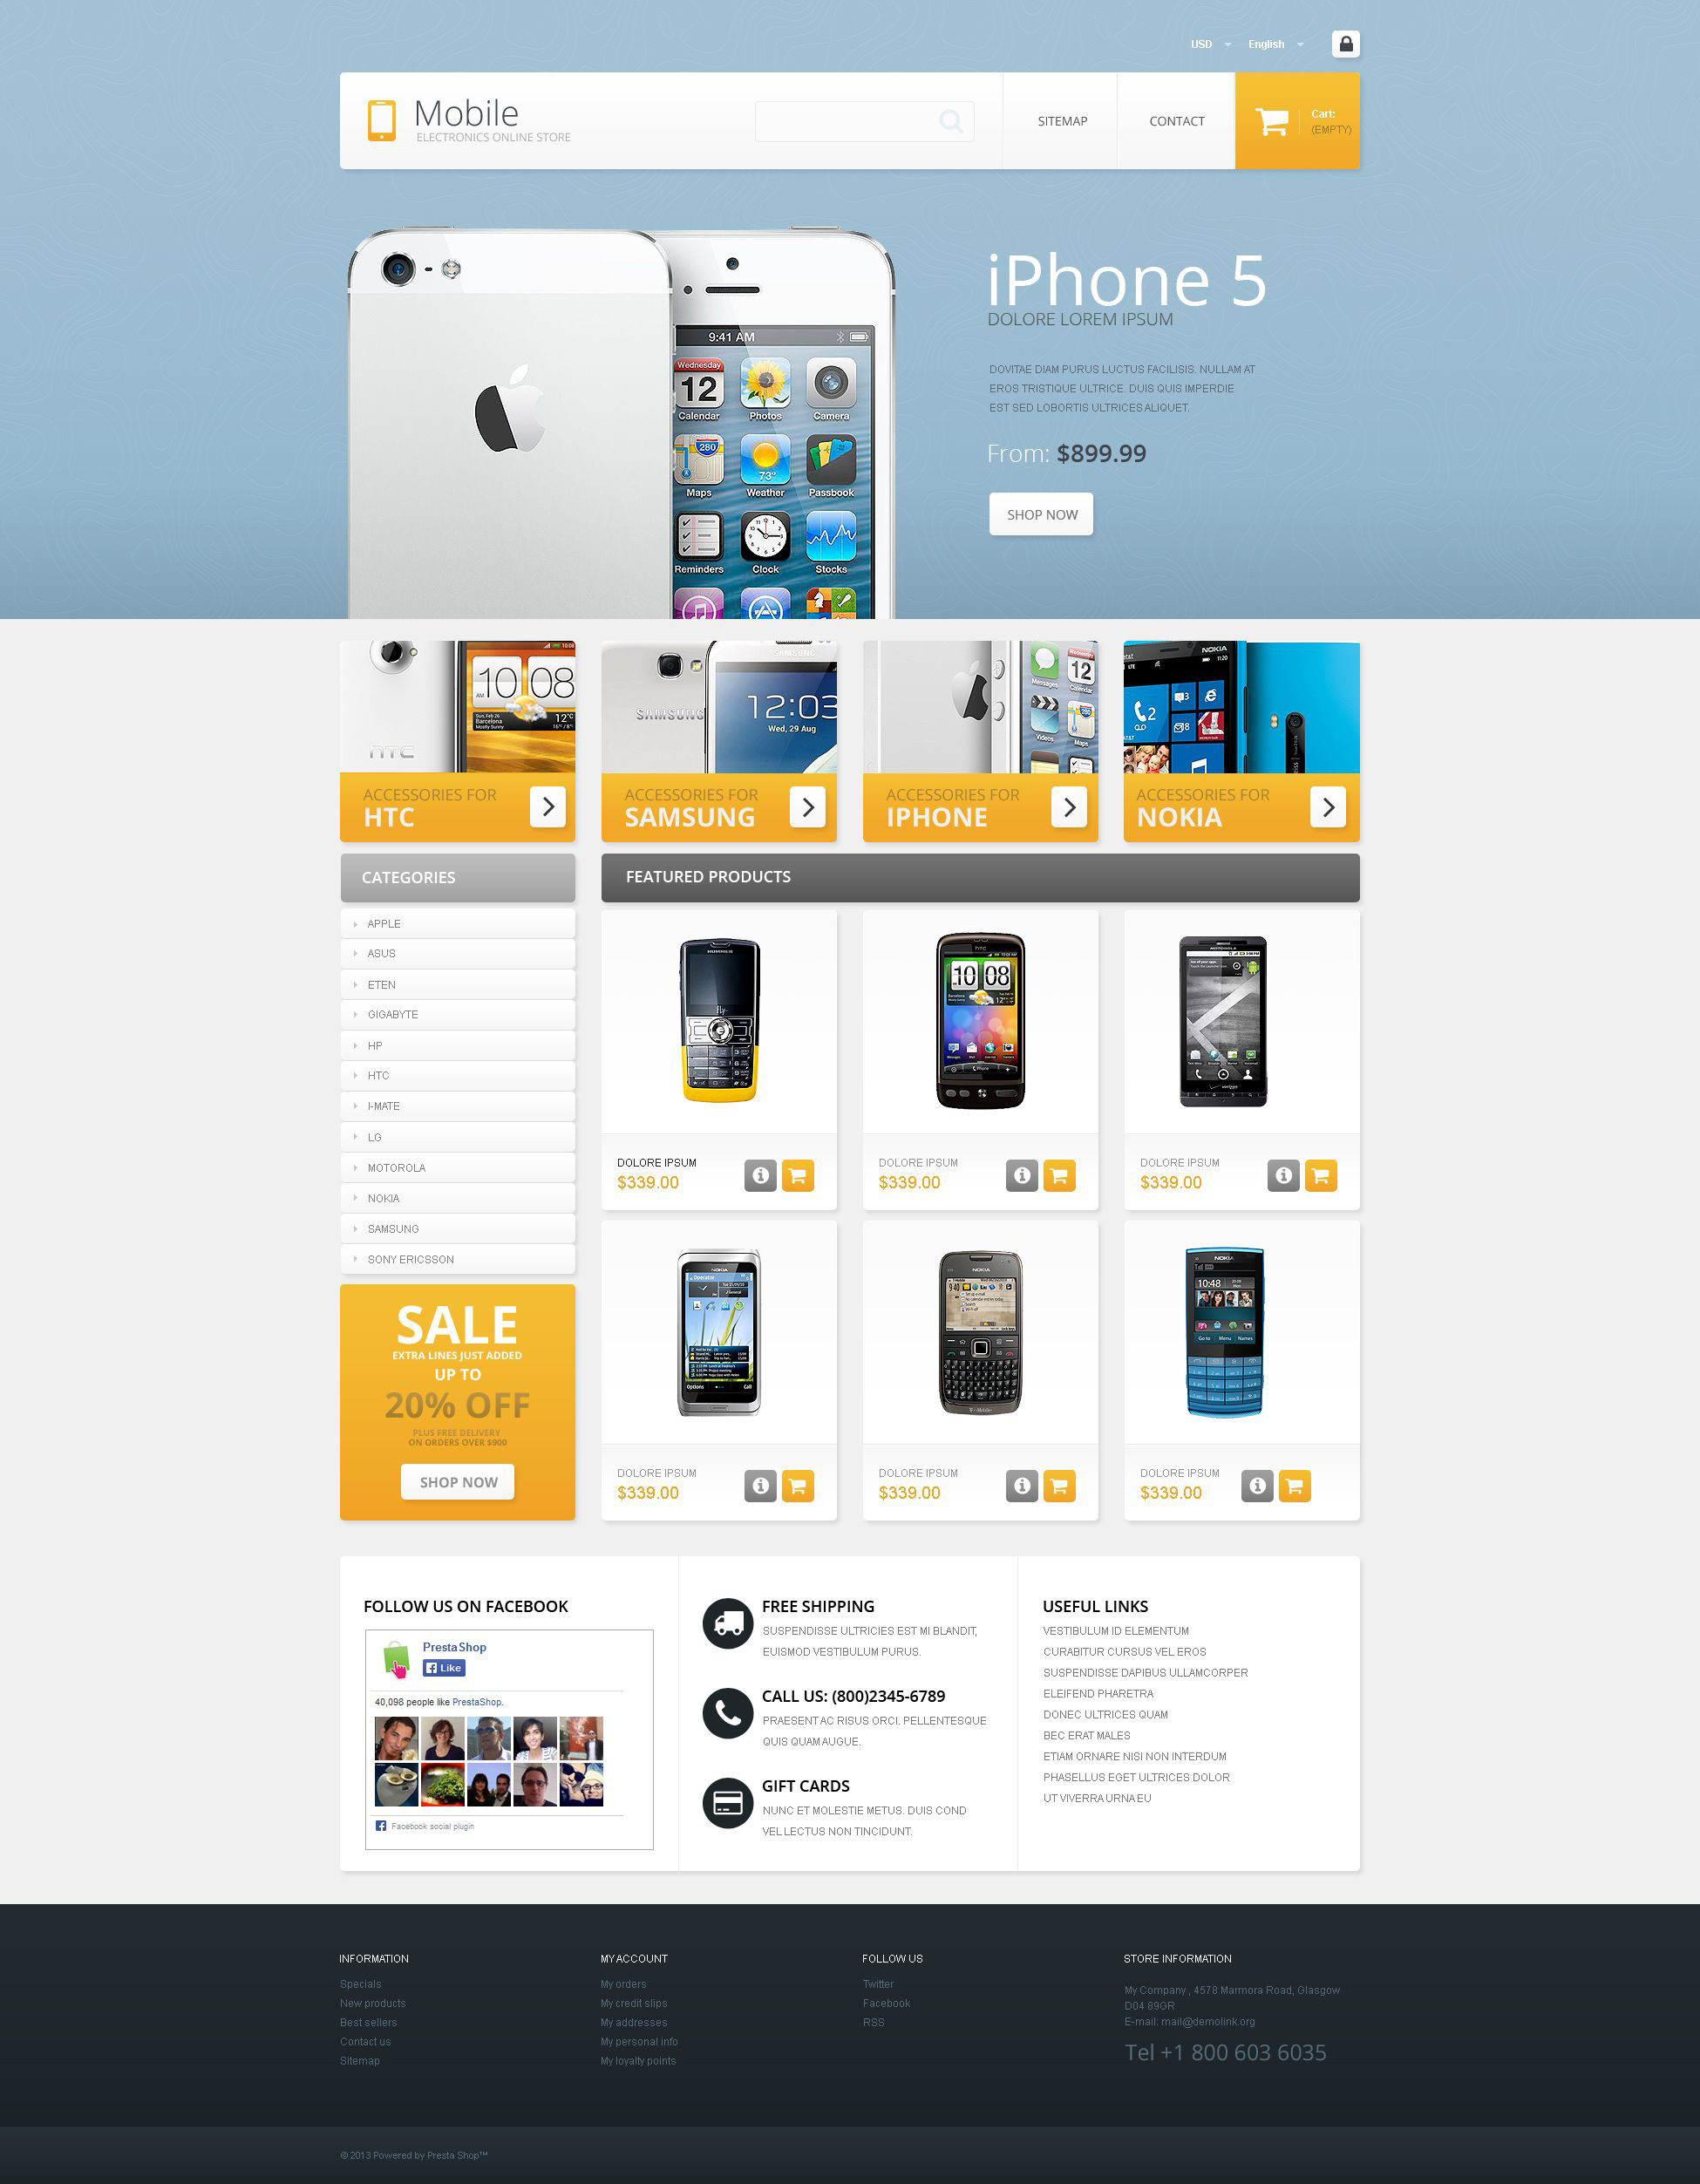 The Mobile Store PrestaShop Design 53756, one of the best PrestaShop themes of its kind (electronics, most popular), also known as mobile store PrestaShop template, phone PrestaShop template, service PrestaShop template, time PrestaShop template, price PrestaShop template, plan PrestaShop template, entertainment PrestaShop template, content PrestaShop template, talk PrestaShop template, connection PrestaShop template, communication PrestaShop template, home PrestaShop template, new PrestaShop template, projects PrestaShop template, specials PrestaShop template, my account PrestaShop template, contacts PrestaShop template, shopping cart PrestaShop template, images PrestaShop template, catalog PrestaShop template, offer PrestaShop template, save PrestaShop template, savings PrestaShop template, profit PrestaShop template, shippings PrestaShop template, returns PrestaShop template, privacy PrestaShop template, conditions PrestaShop template, cell PrestaShop template, phonescor and related with mobile store, phone, service, time, price, plan, entertainment, content, talk, connection, communication, home, new, projects, specials, my account, contacts, shopping cart, images, catalog, offer, save, savings, profit, shippings, returns, privacy, conditions, cell, phonescor, etc.